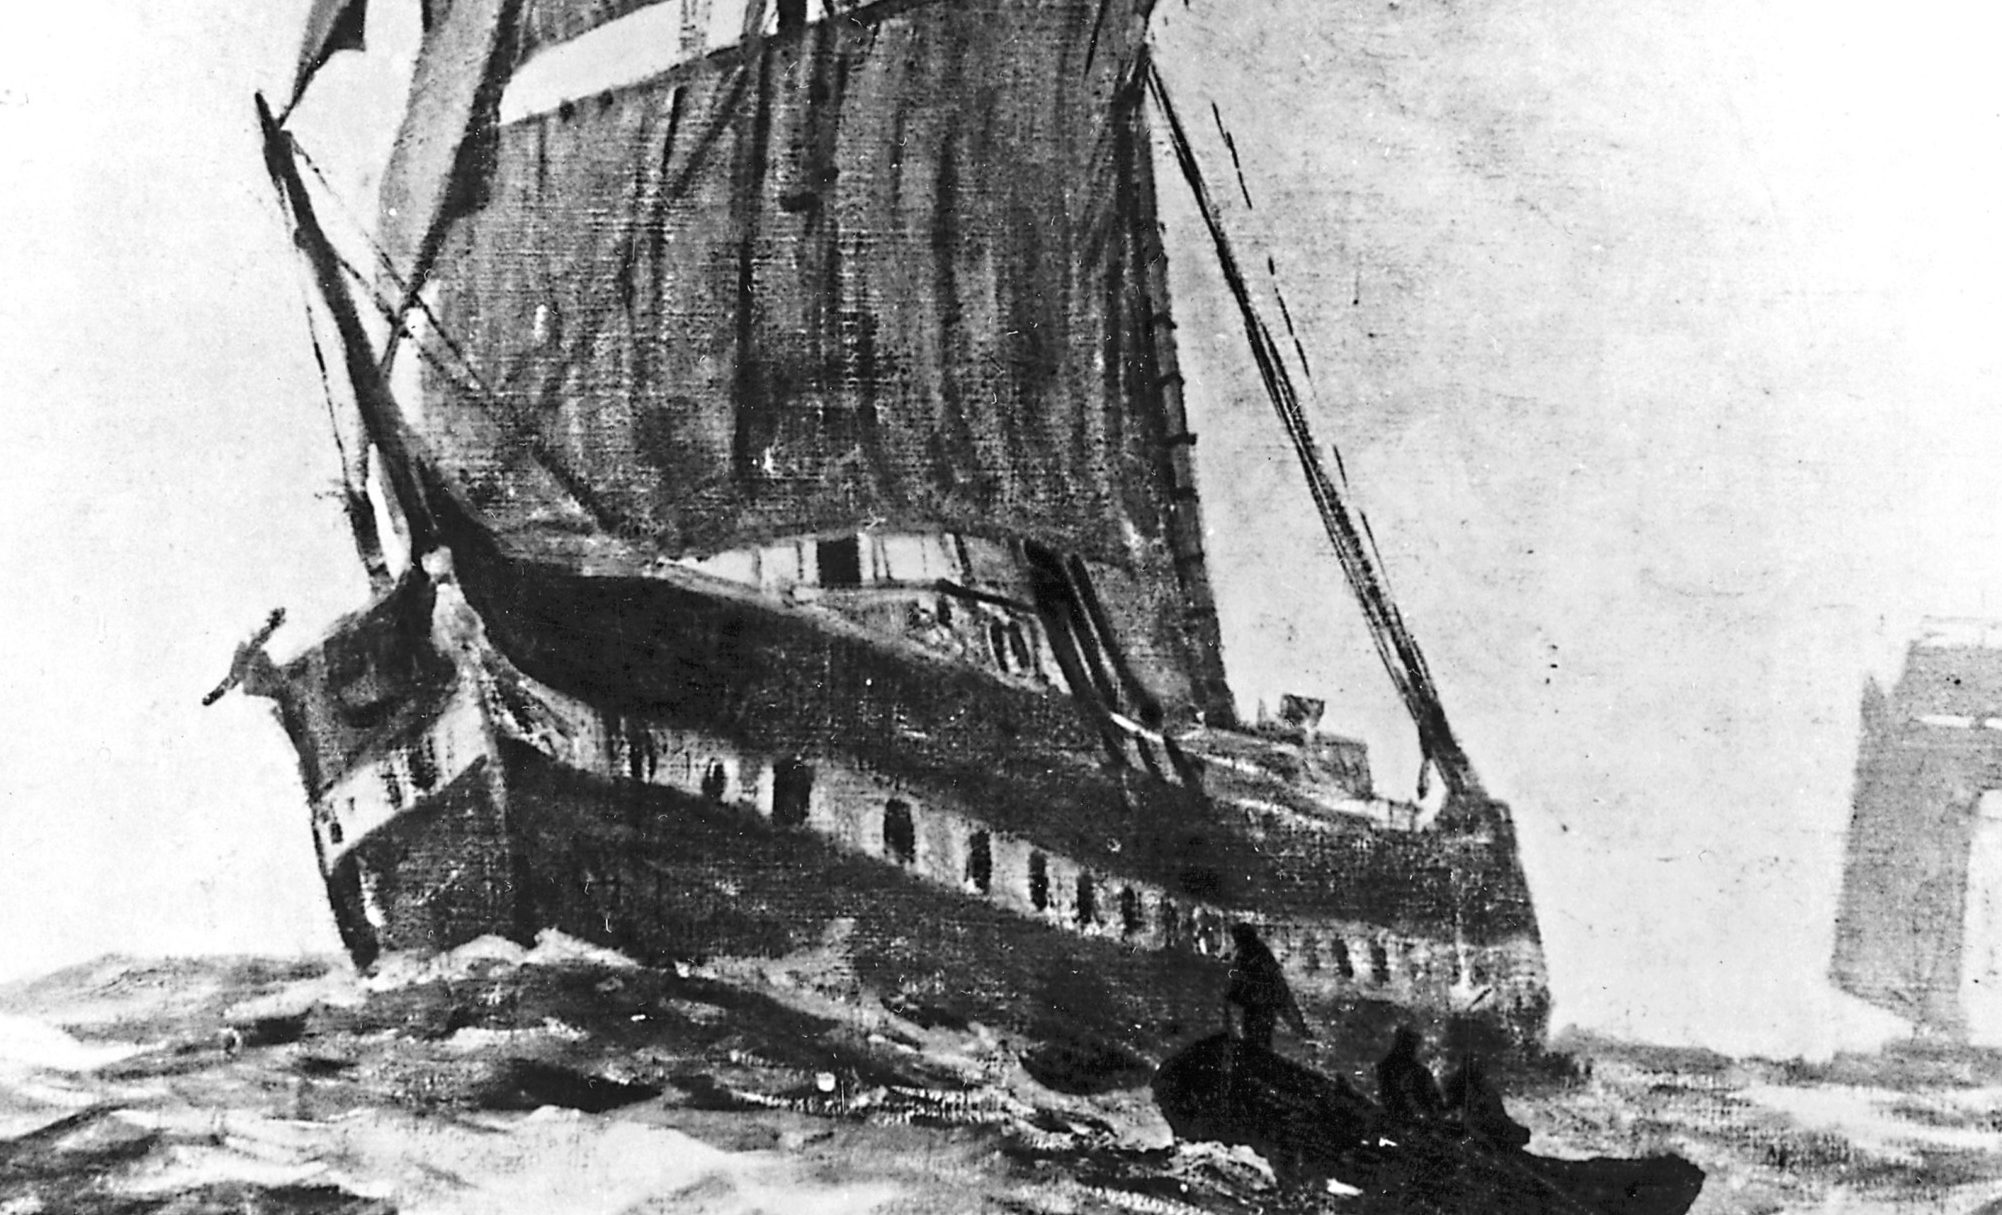 The mystery of the Mary Celeste has baffled people for over 140 years (DeAgostini/Getty Images)